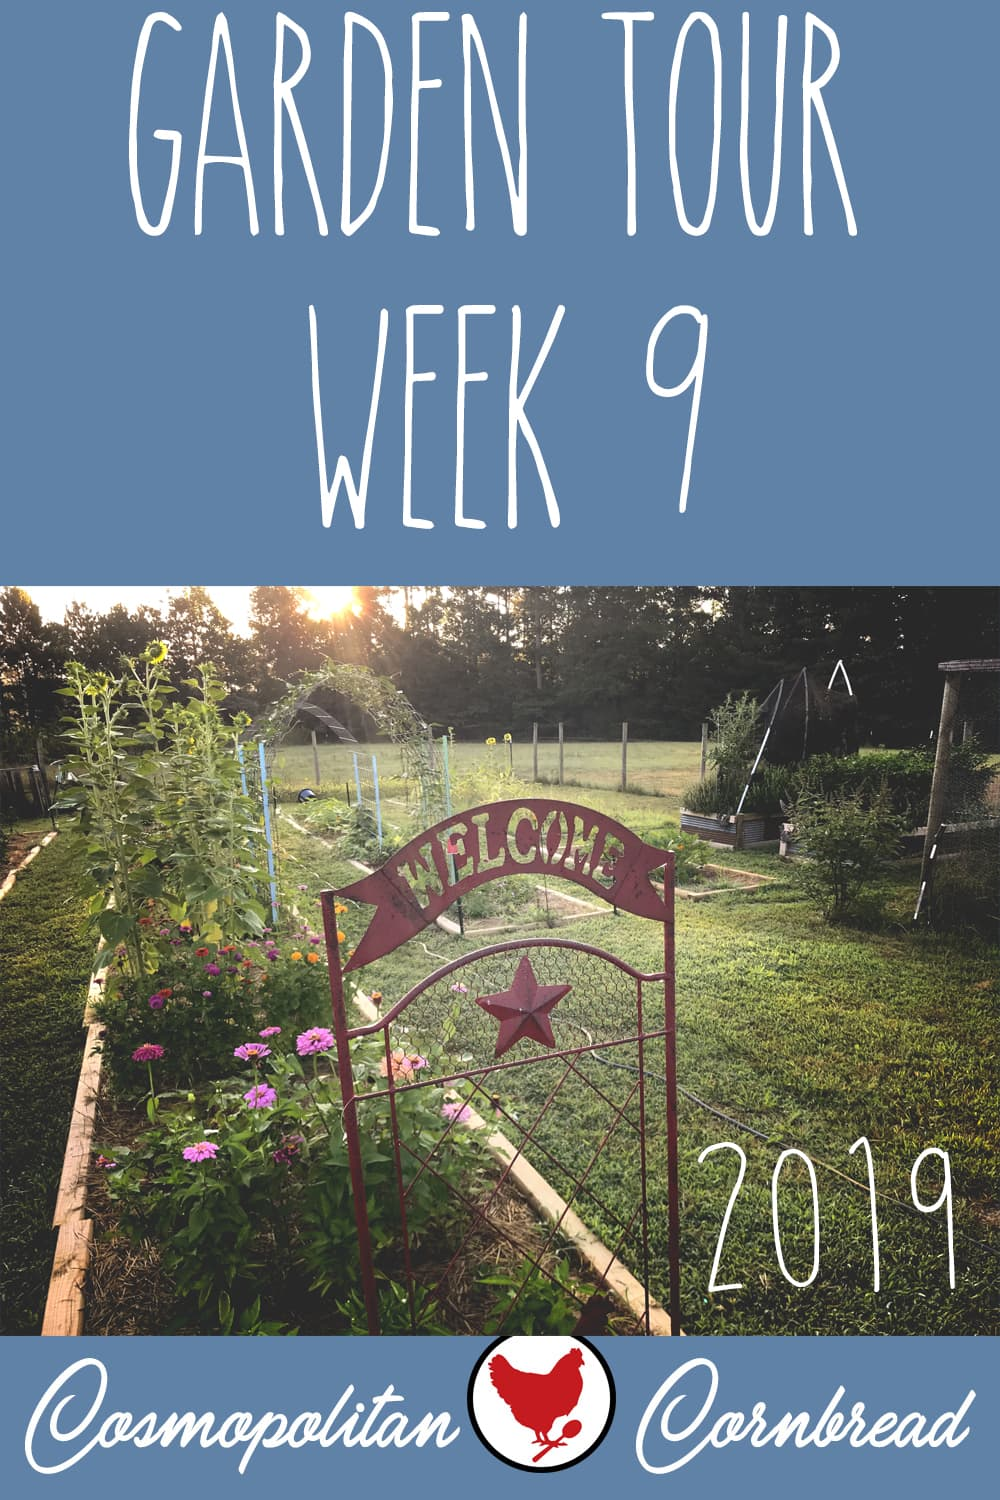 Week 9 of our potager garden, here in zone 7b. Many things are doing well, some things are struggling in the heat, and we have a garden invader that I discovered during the tour!